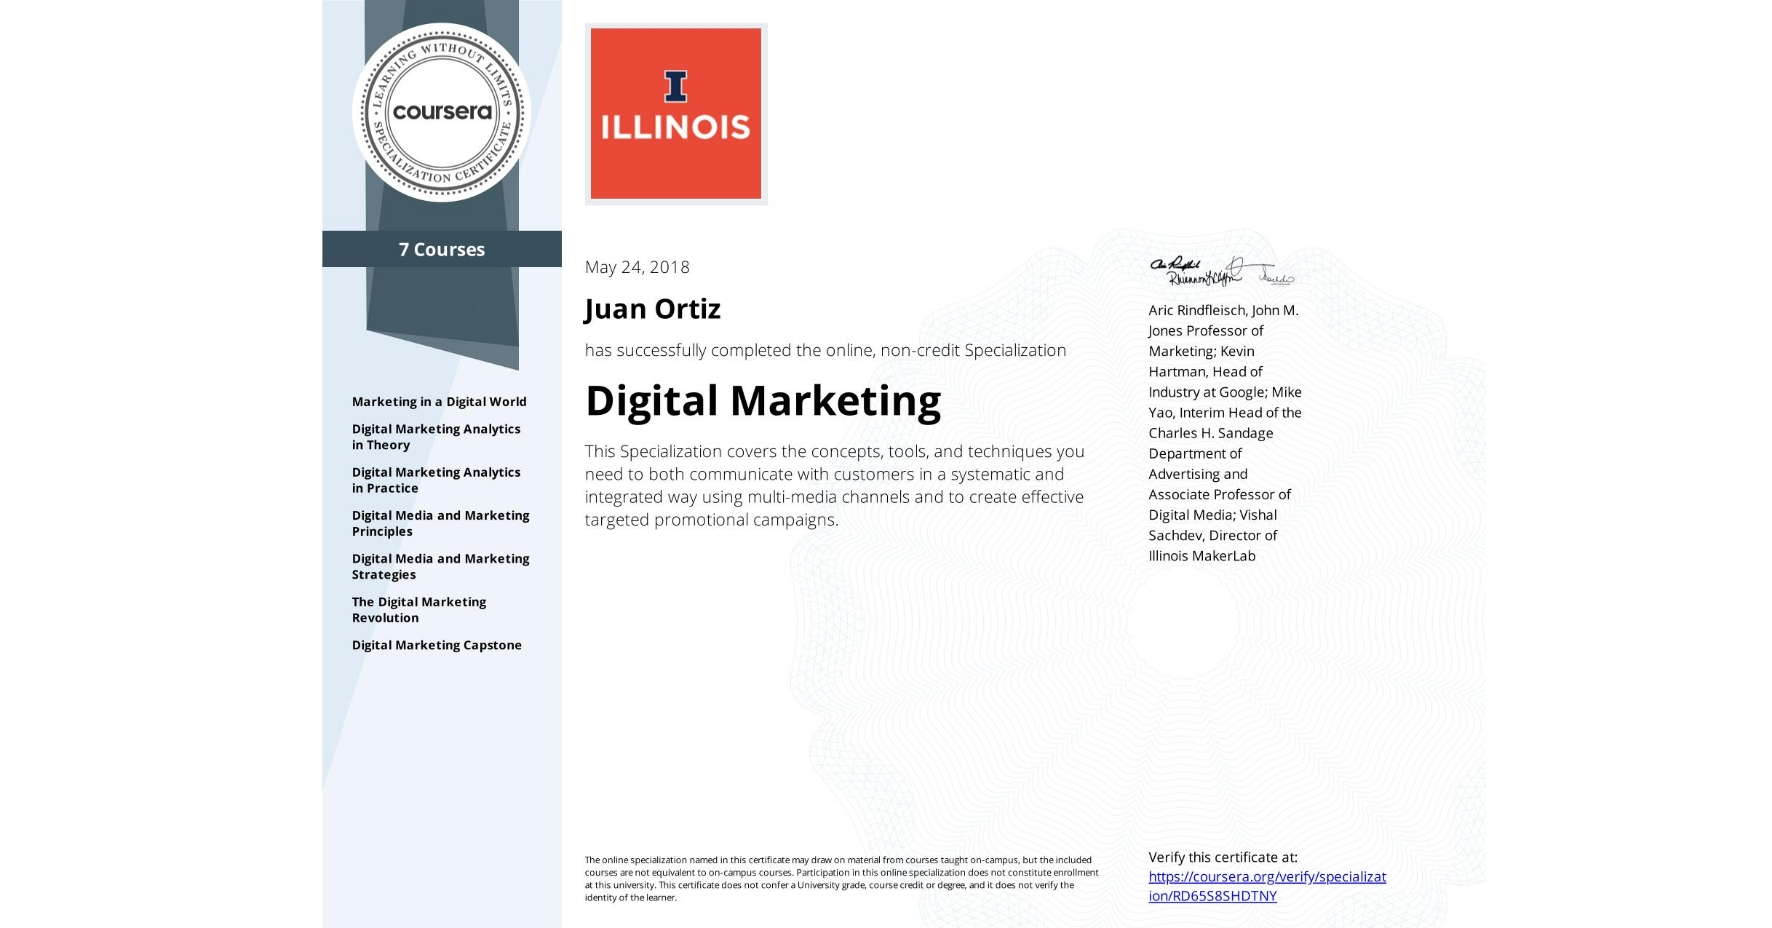 View certificate for Juan Ortiz, Digital Marketing, offered through Coursera. This Specialization covers the concepts, tools, and techniques you need to both communicate with customers in a systematic and integrated way using multi-media channels and to create effective targeted promotional campaigns.